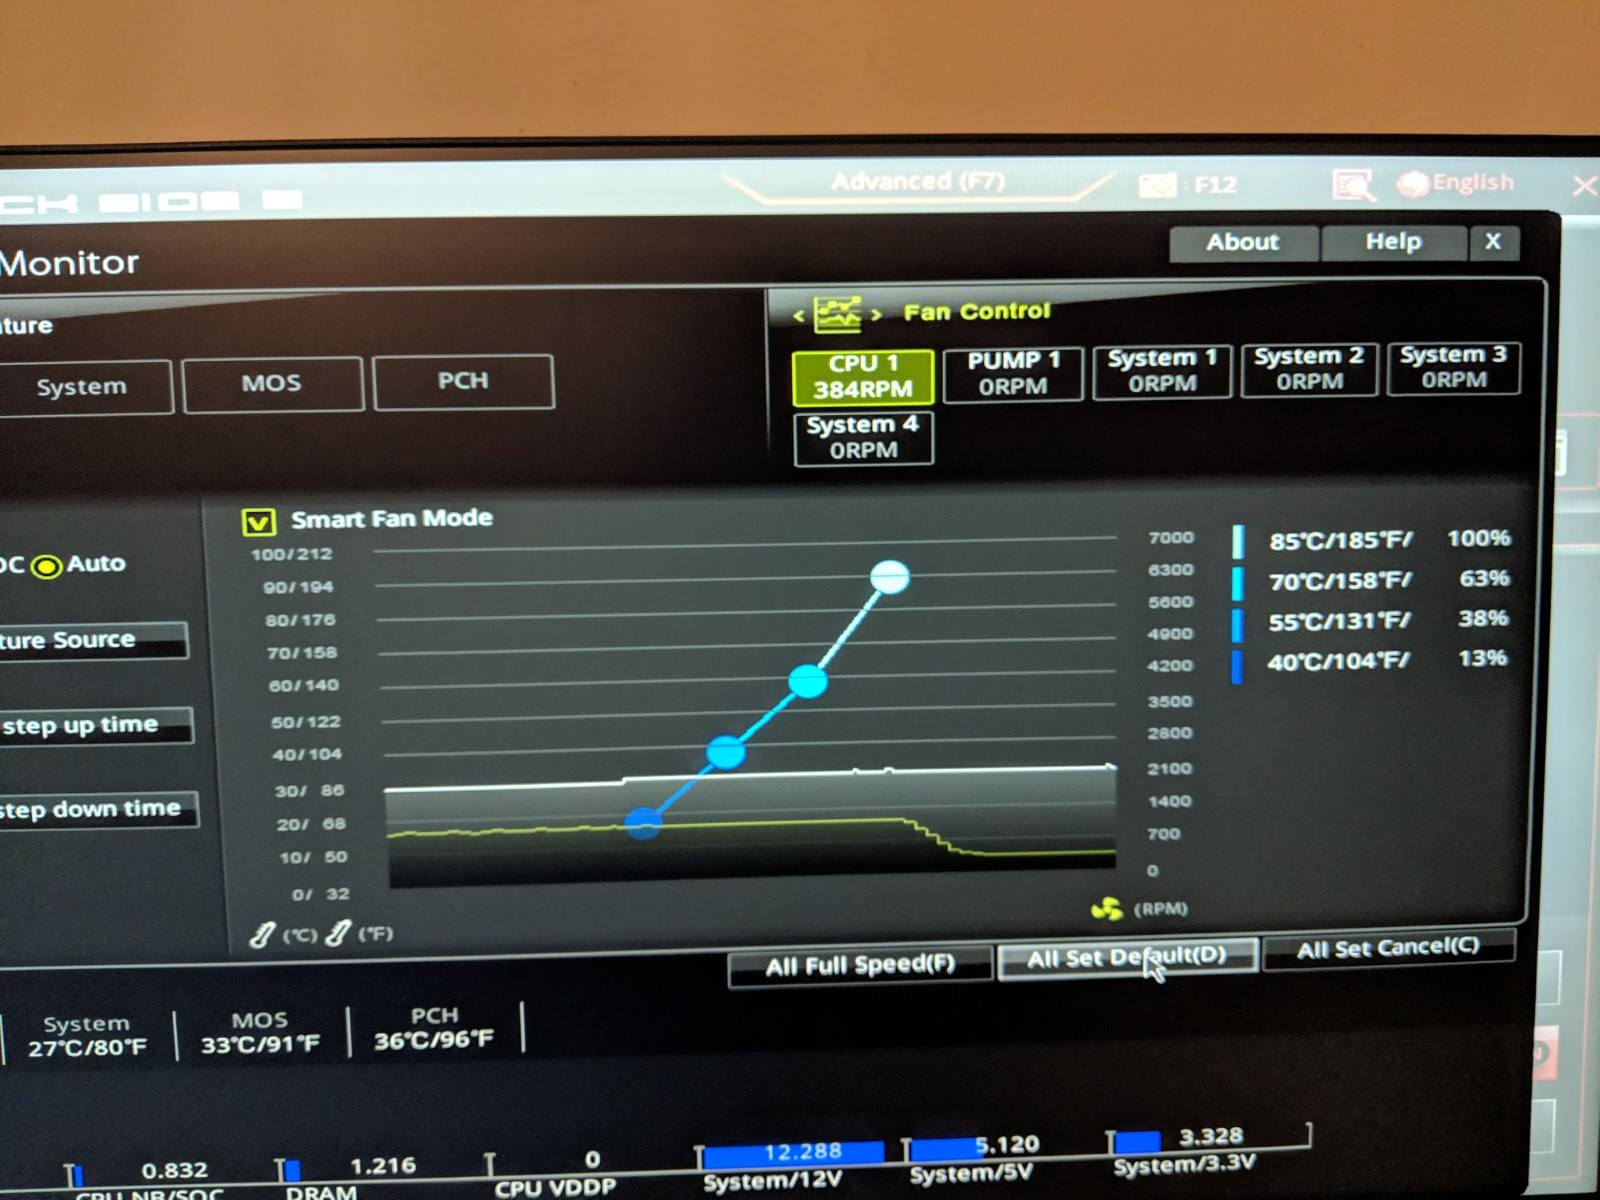 MSI Tomahawk: CPU fan curve not working - CPUs, Motherboards, and